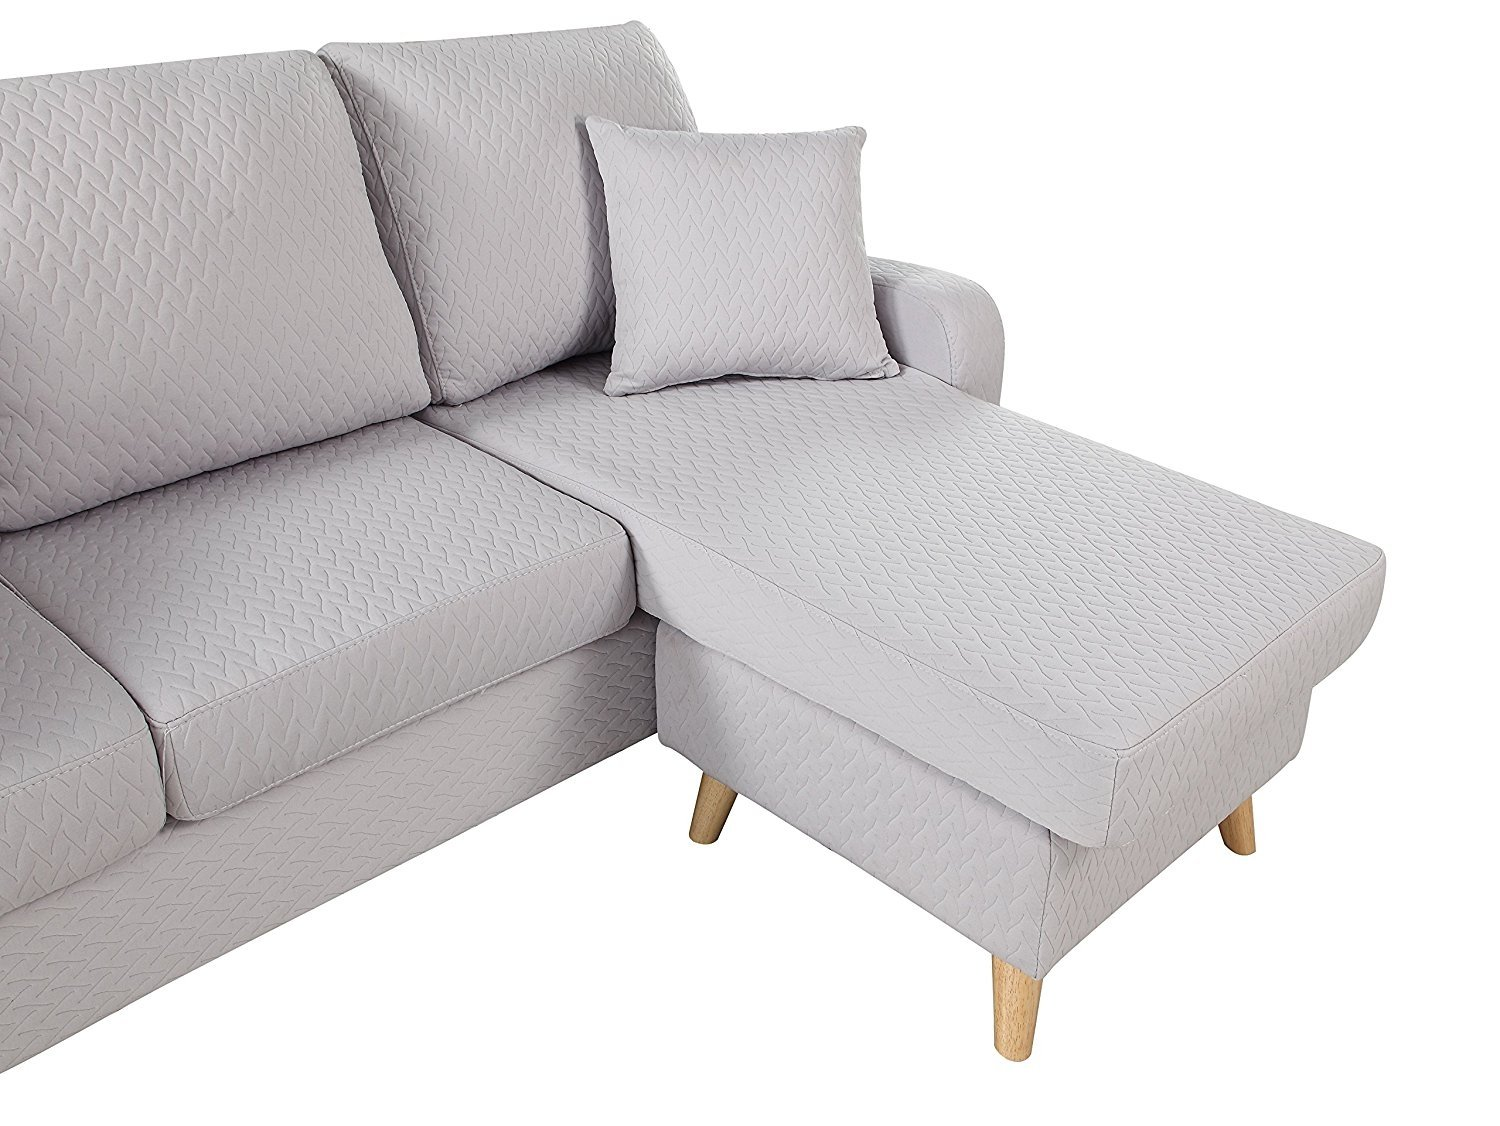 Light grey small space furniture sectional sofa with reversible chaise lounge 647923466102 ebay - Small couch with chaise ...